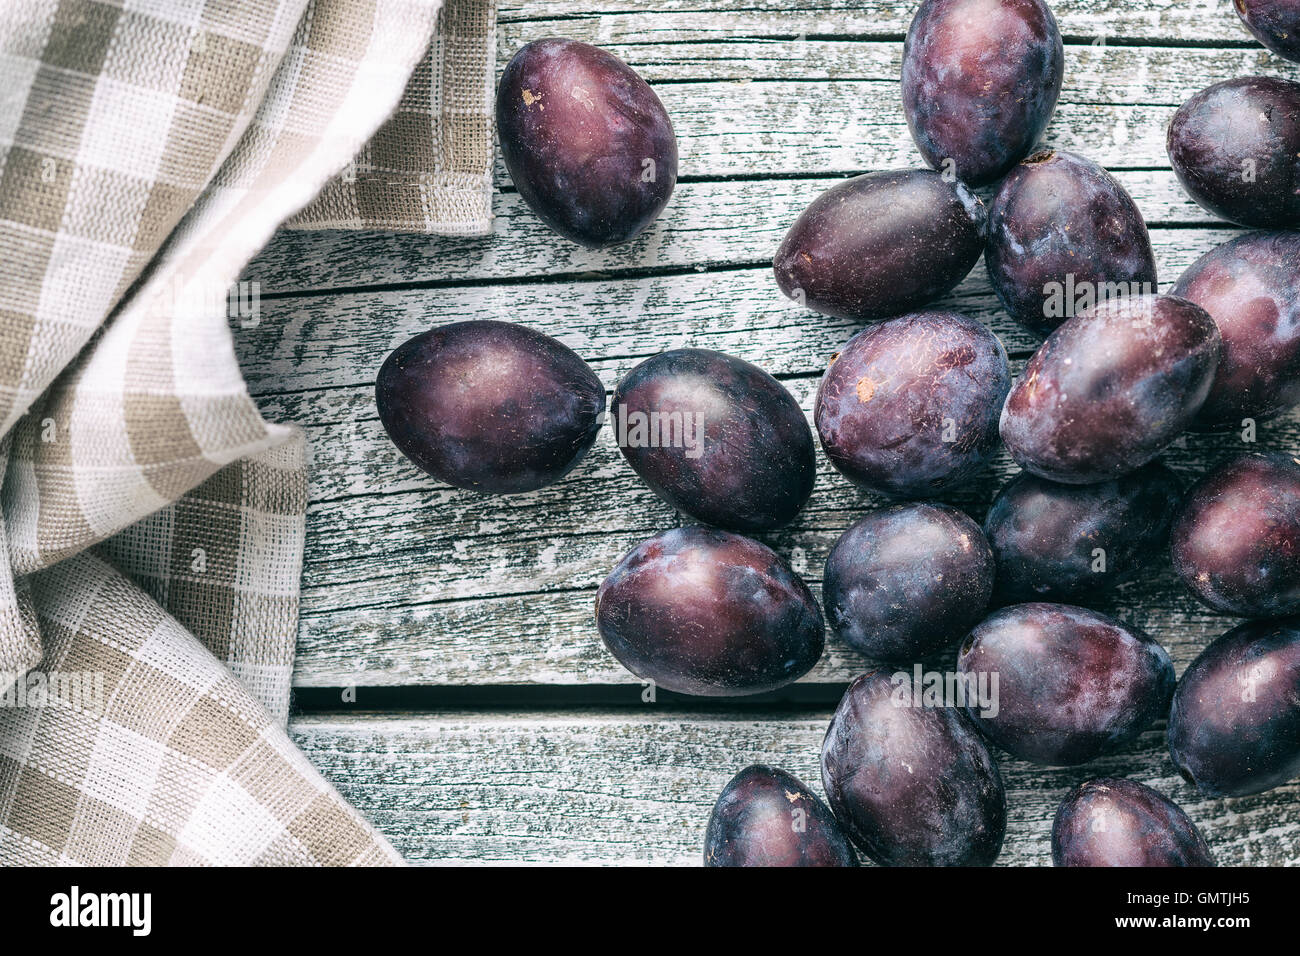 Fresh plums from garden on old kitchen table. Top view. - Stock Image